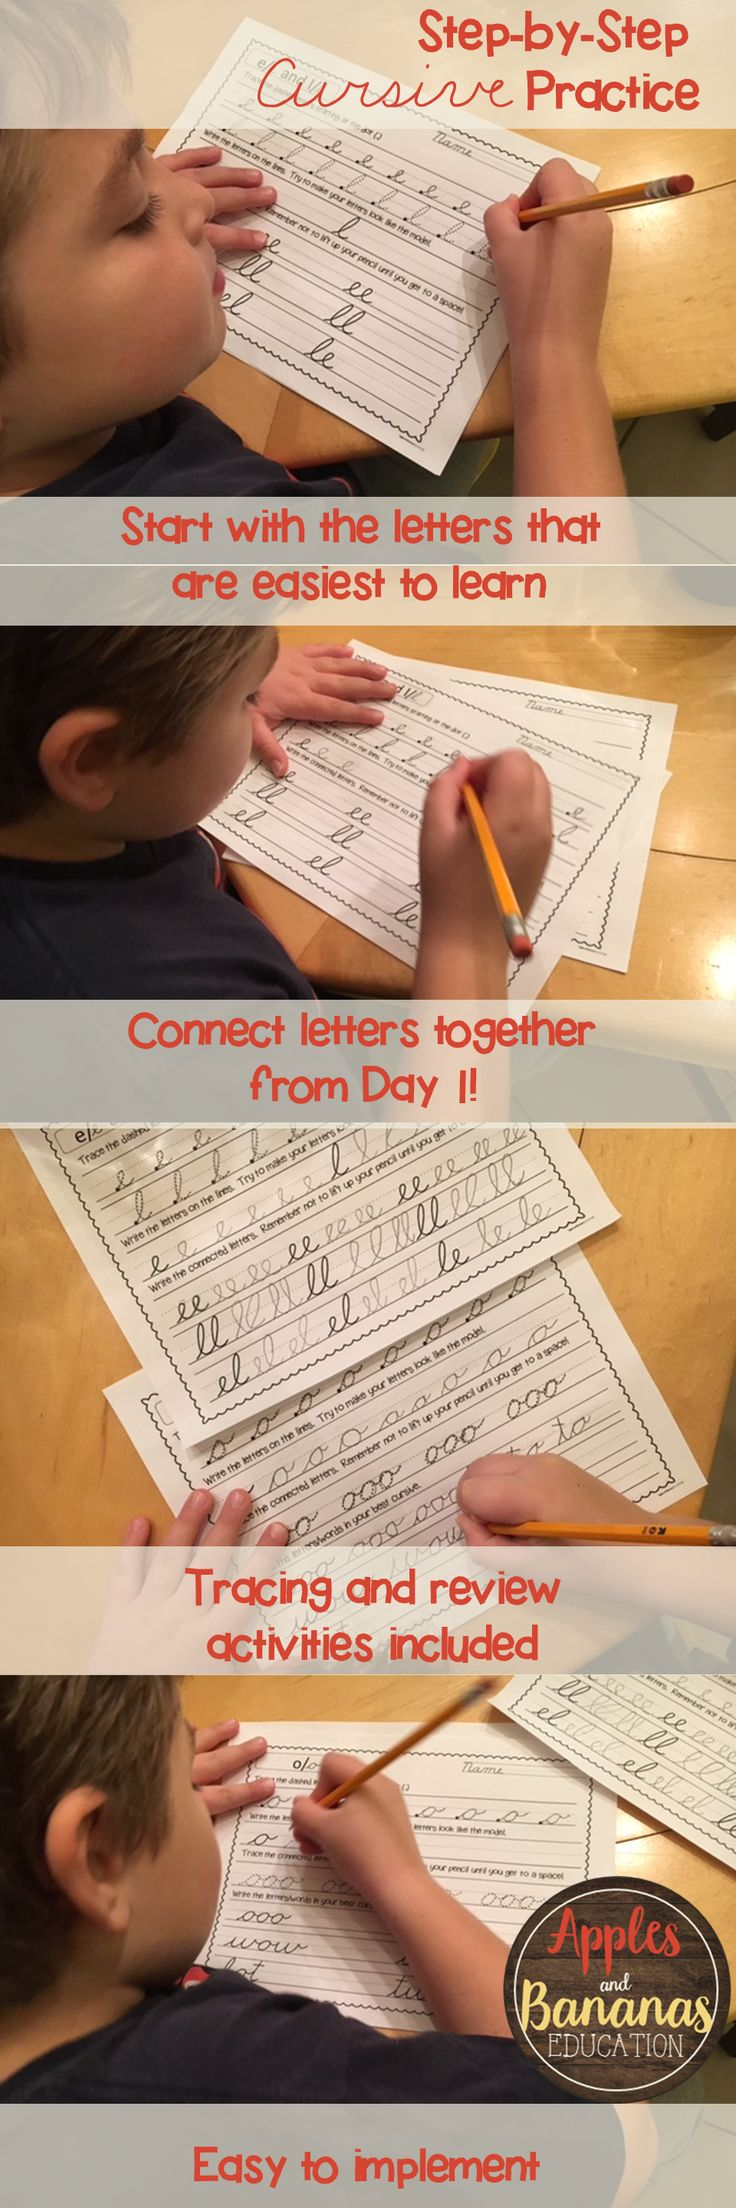 Teach cursive handwriting in an easy and progressive way.  Help students learn how to connect letters together from Day 1 instead of waiting until they've learned the entire alphabet.  Includes tracing and review activities.